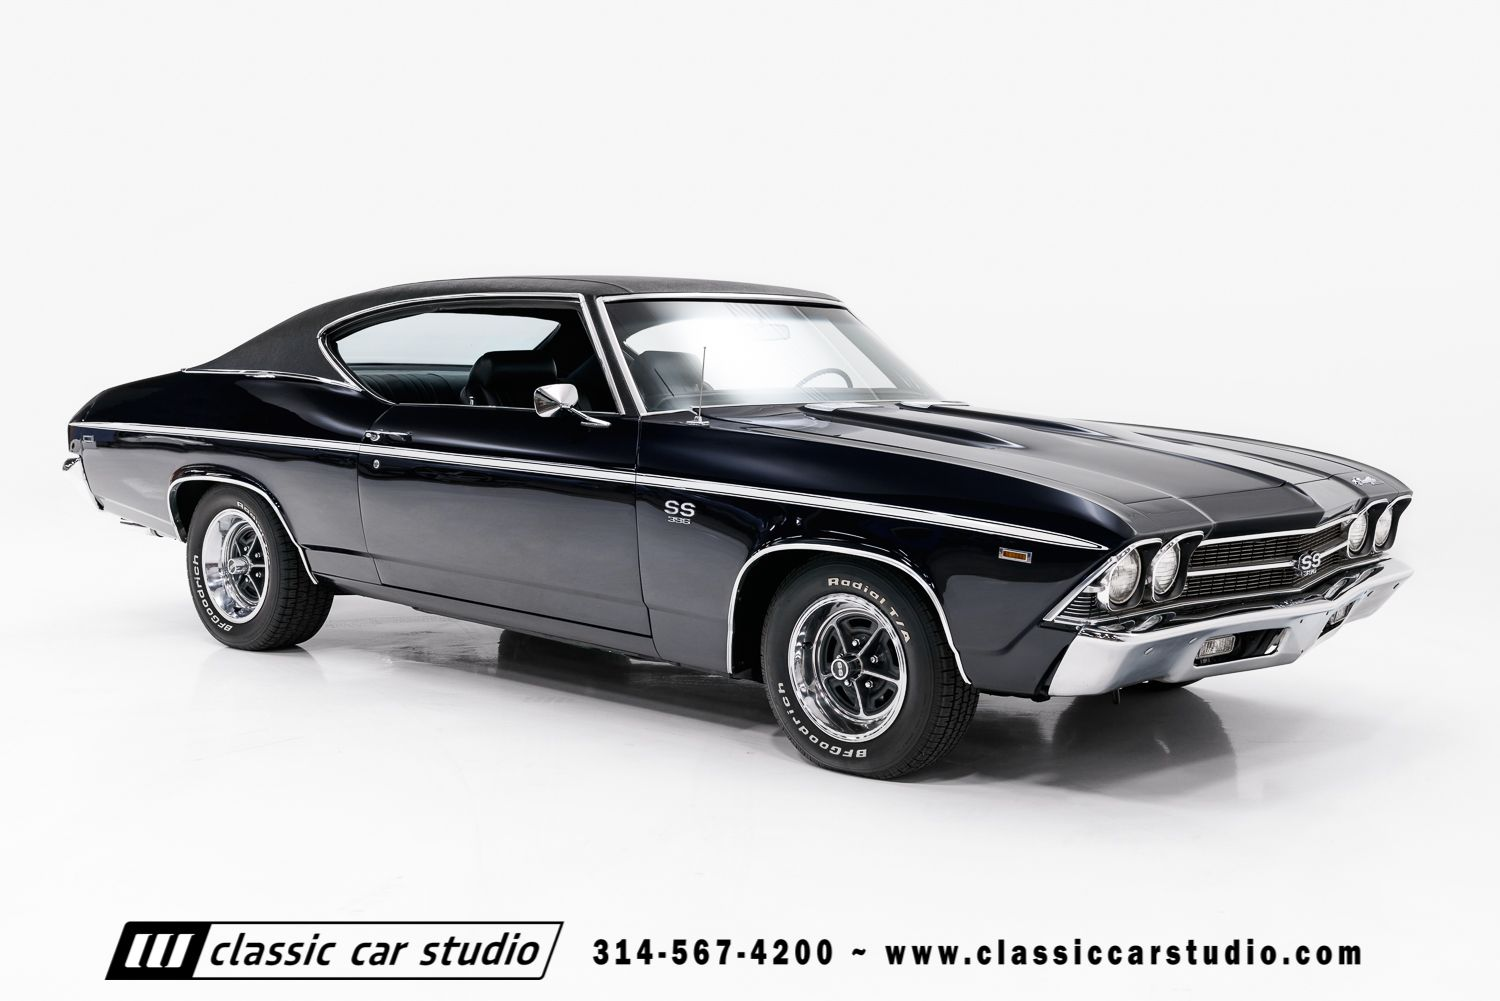 1969 Chevrolet Chevelle SS | Classic Car Studio | 1969 SS 396 ...